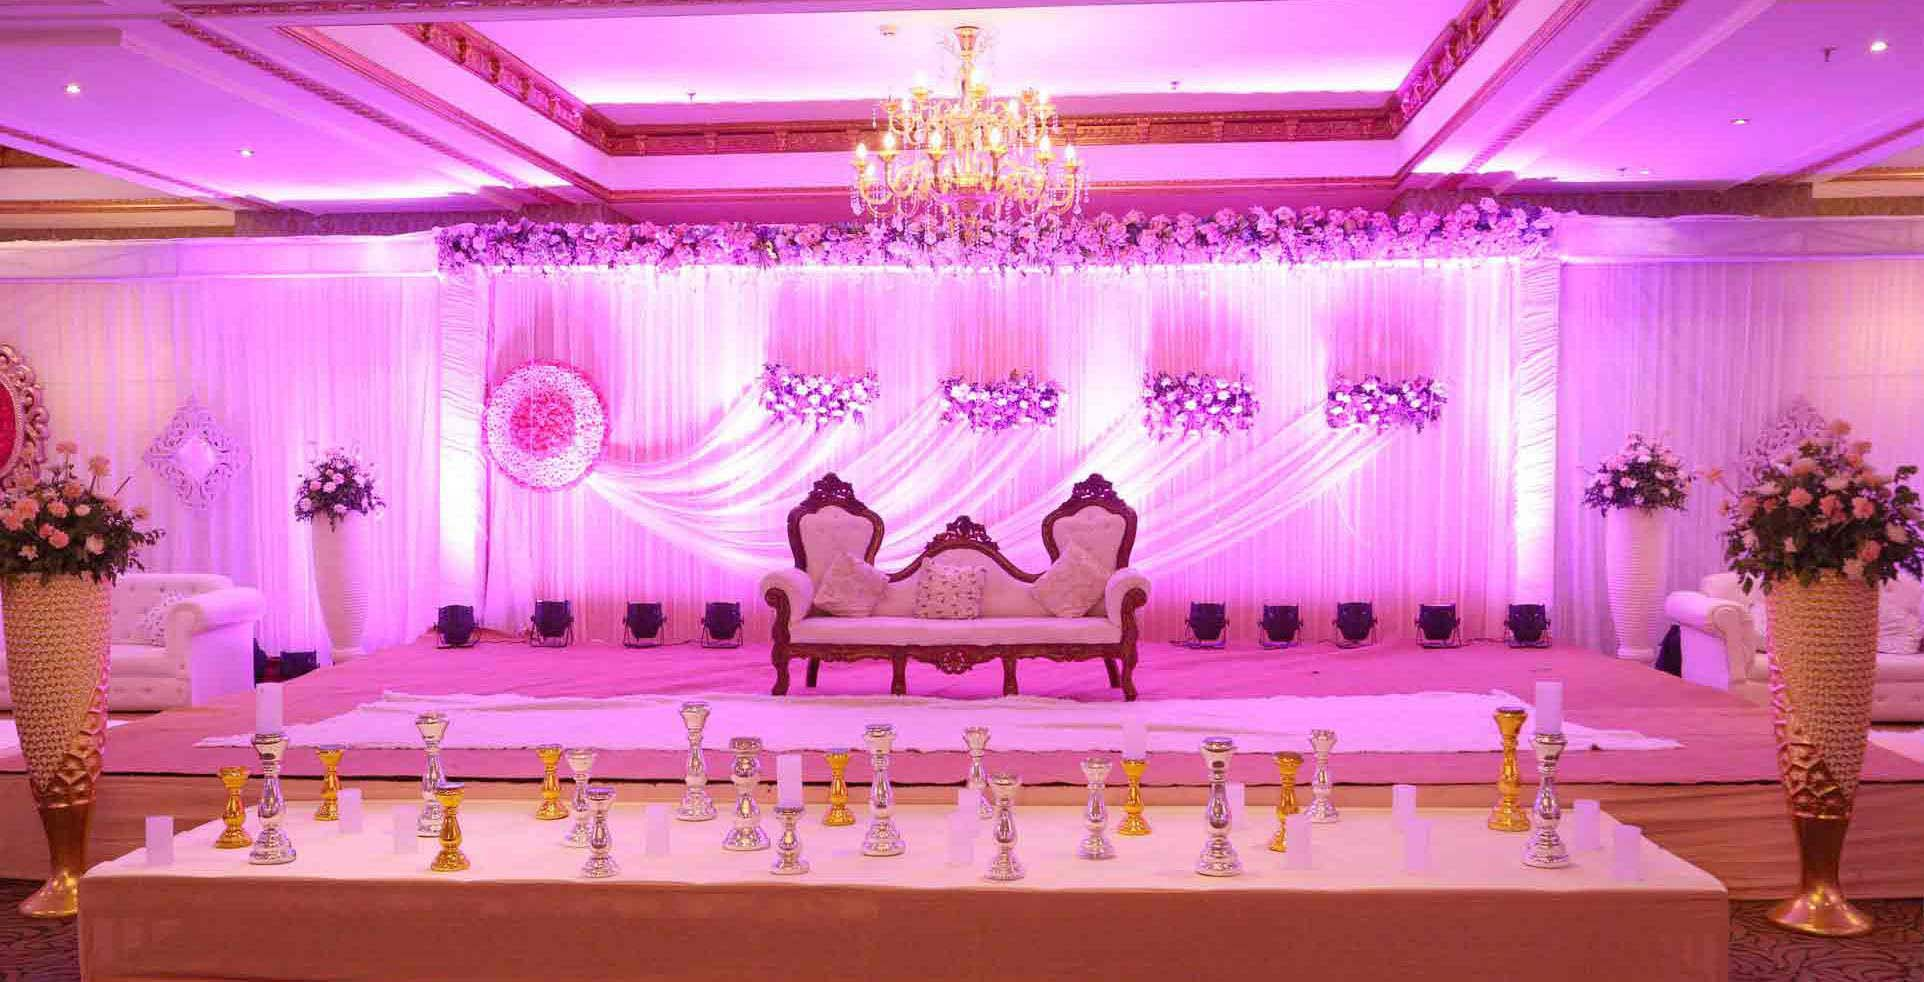 Weddings & Parties Venue in South Delhi | Banquet, Meetings ...